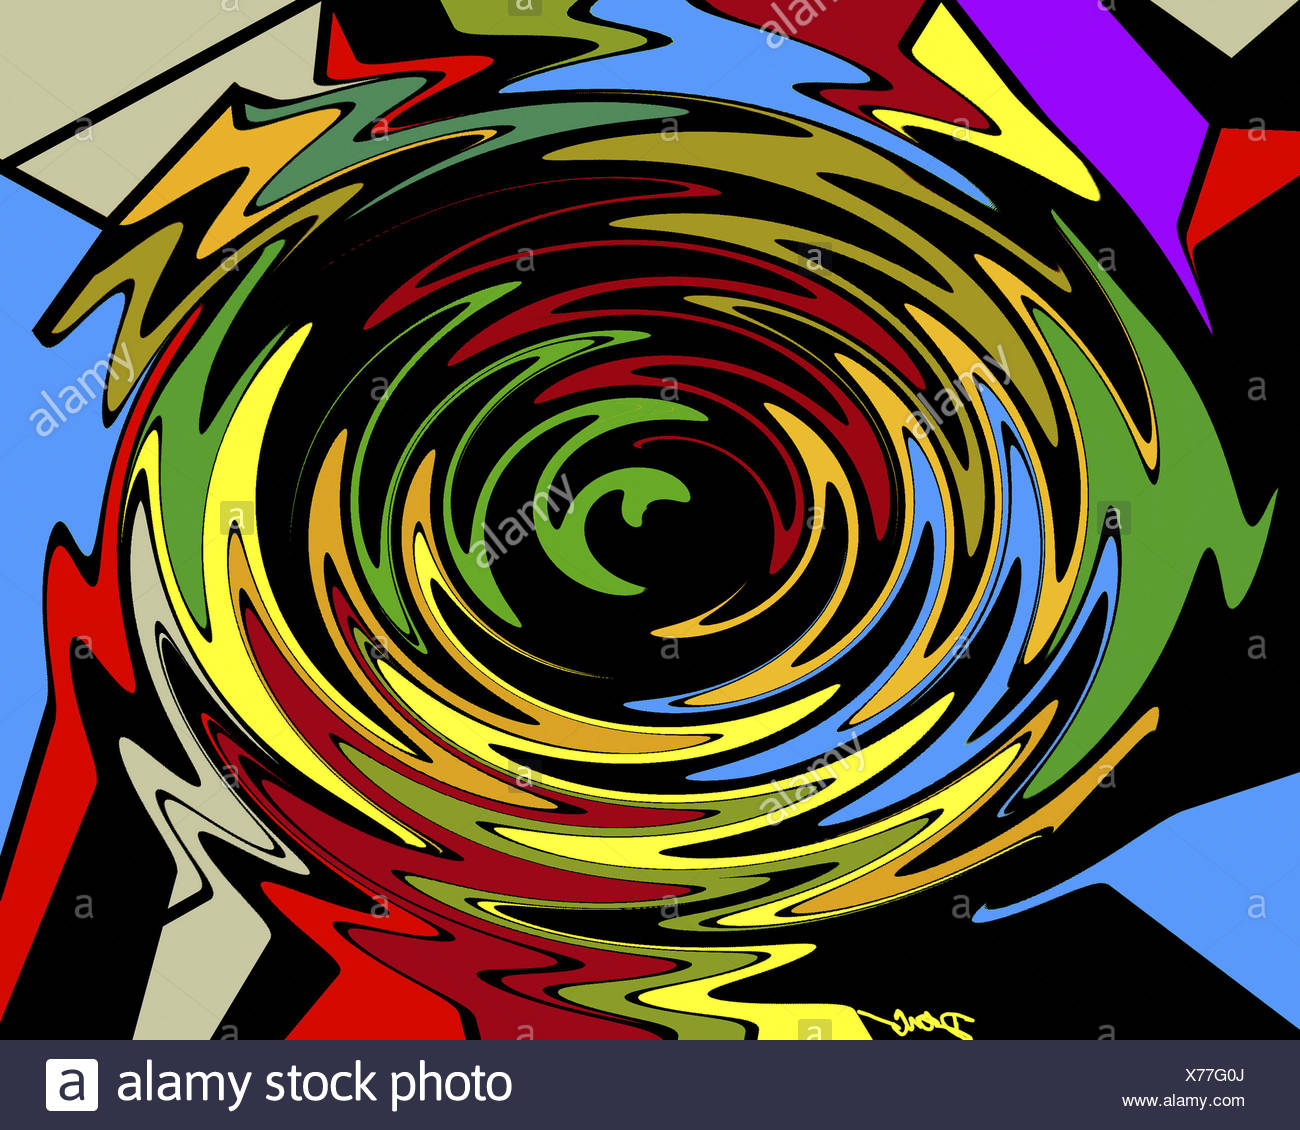 Whirlpool  2002  Diana Ong (b.1940/Chinese-American)  Computer graphics Stock Photo